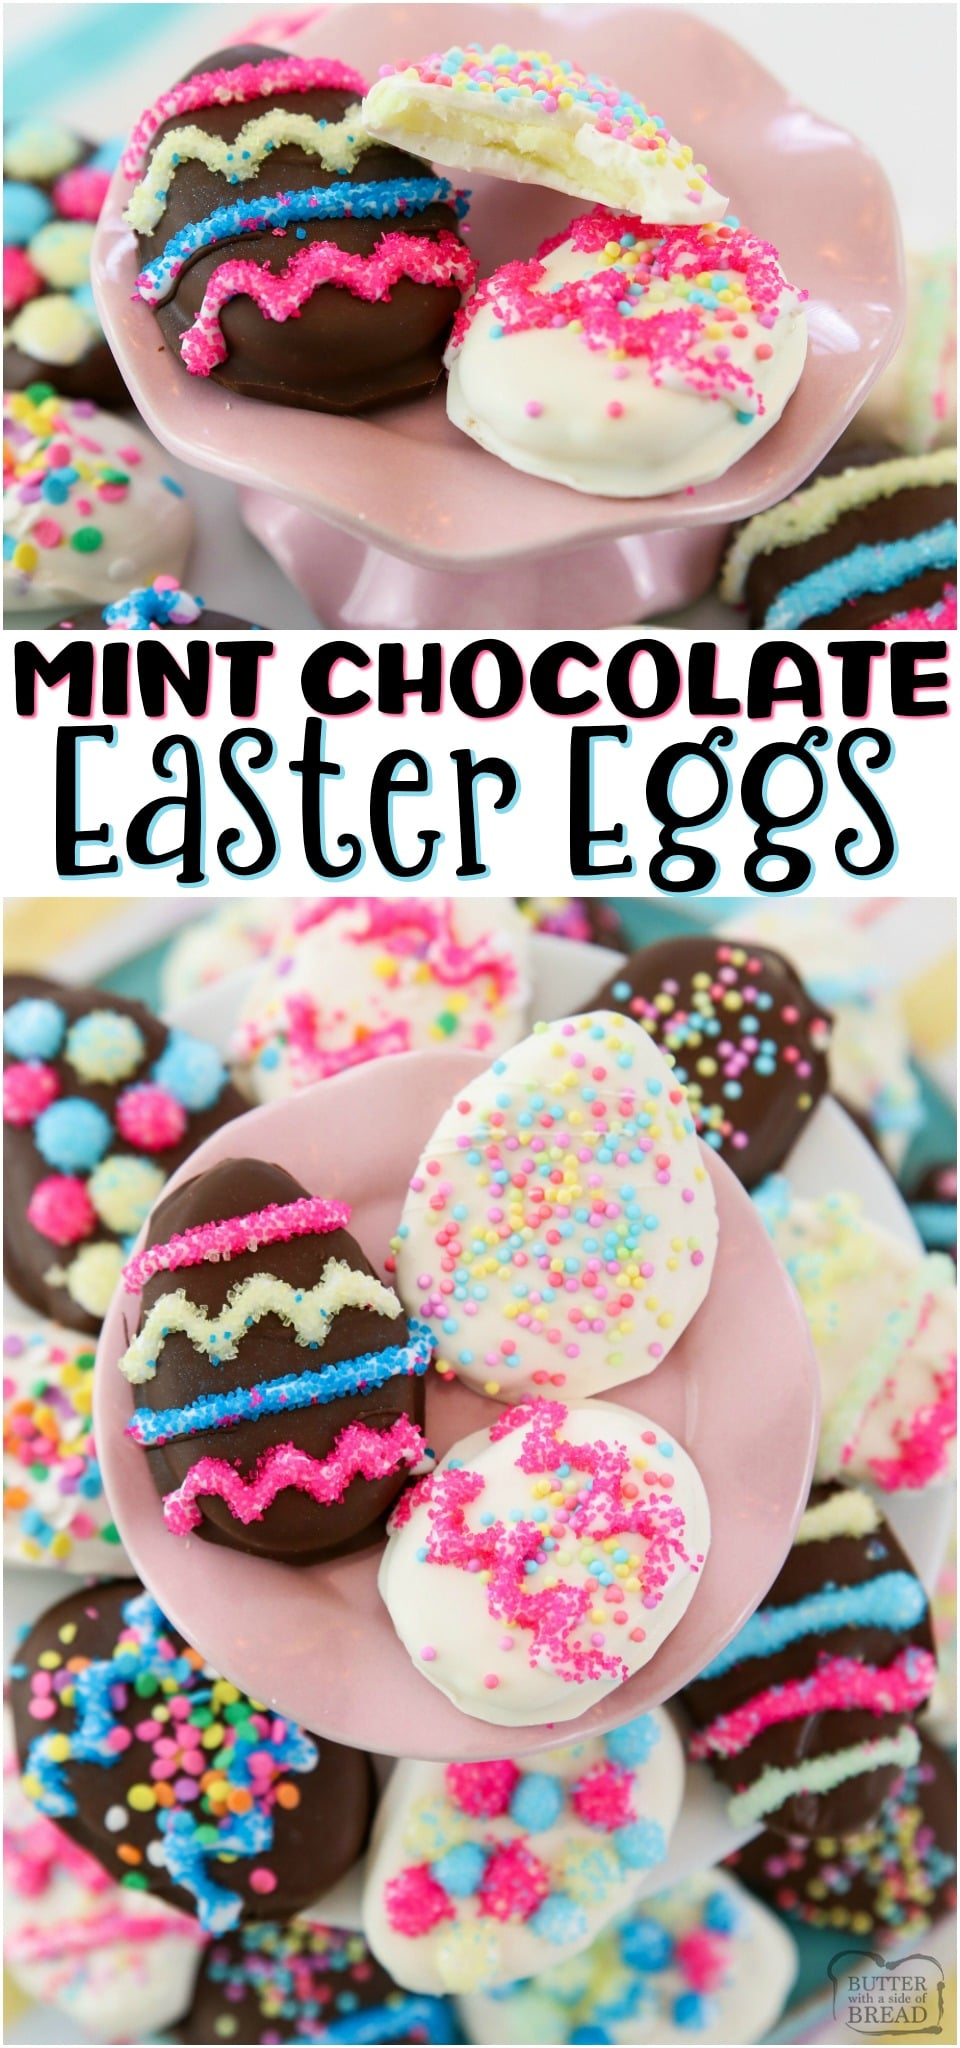 Chocolate Mint Easter Eggs recipe with just a handful of ingredients! Homemade York Peppermint Patties but BETTER, in the shape of darling Easter eggs. Simple soft, sweetened mint candy covered in chocolate for a delicious, easy Easter candy. #Easter #MintChocolate #candy #peppermint #peppermintpatty #homemade #holiday #recipe from BUTTER WITH A SIDE OF BREAD